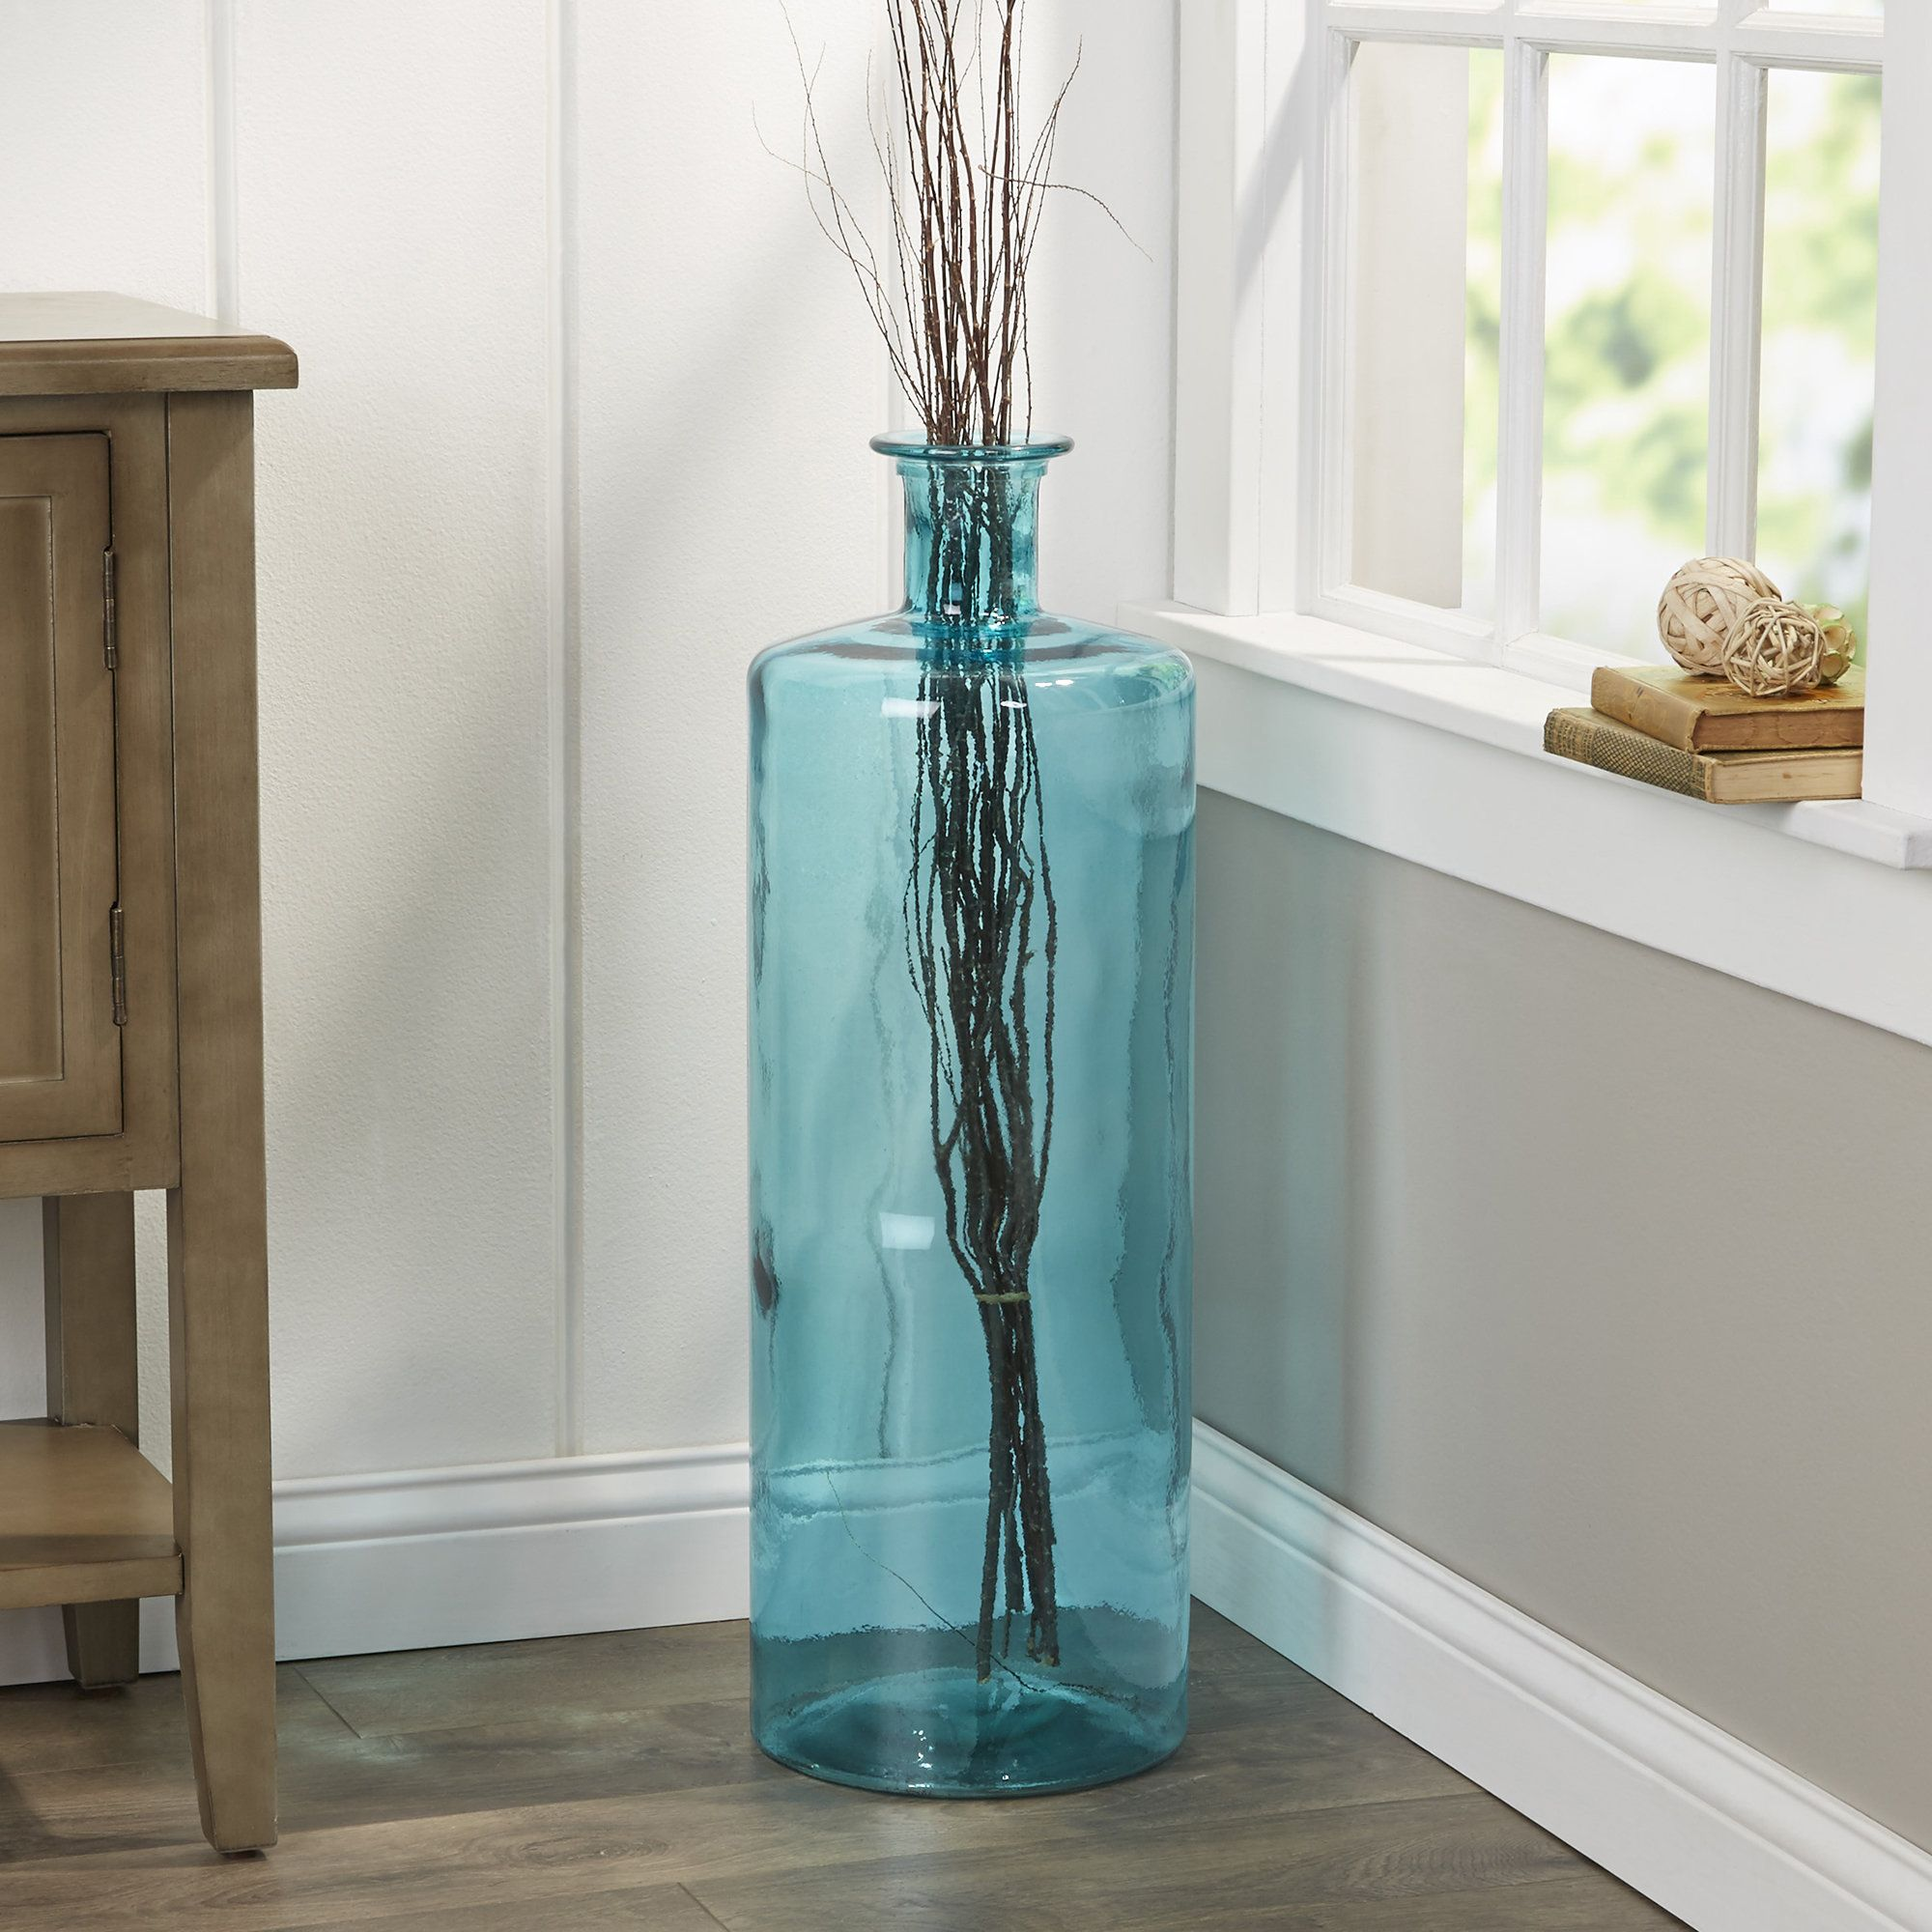 Saida Large Vase Glass Floor Vase Floor Vase Large Vase